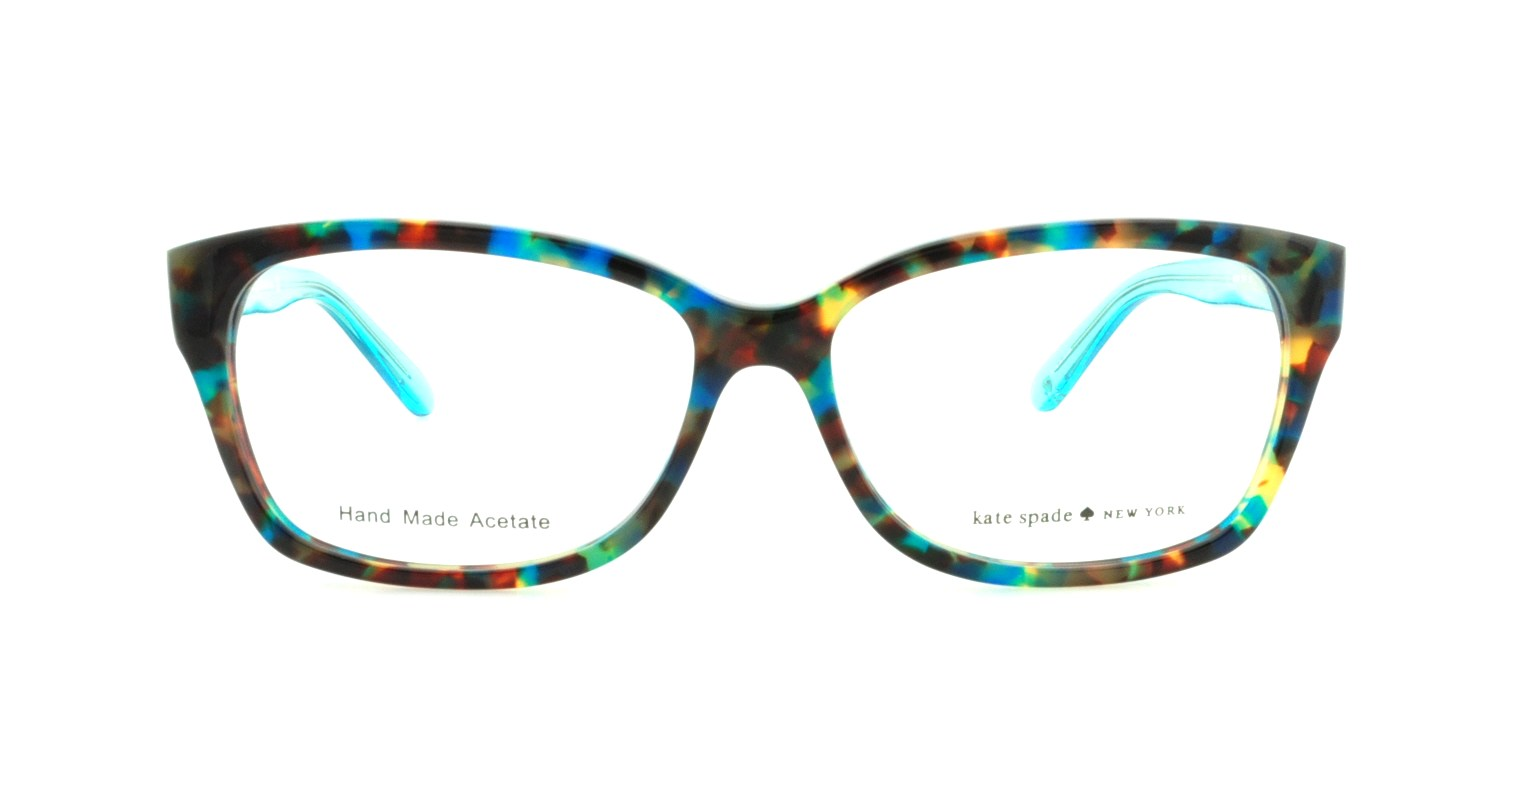 KATE SPADE Eyeglasses DEMI/F 0FB1 Teal Havana Teal 54MM - Walmart.com